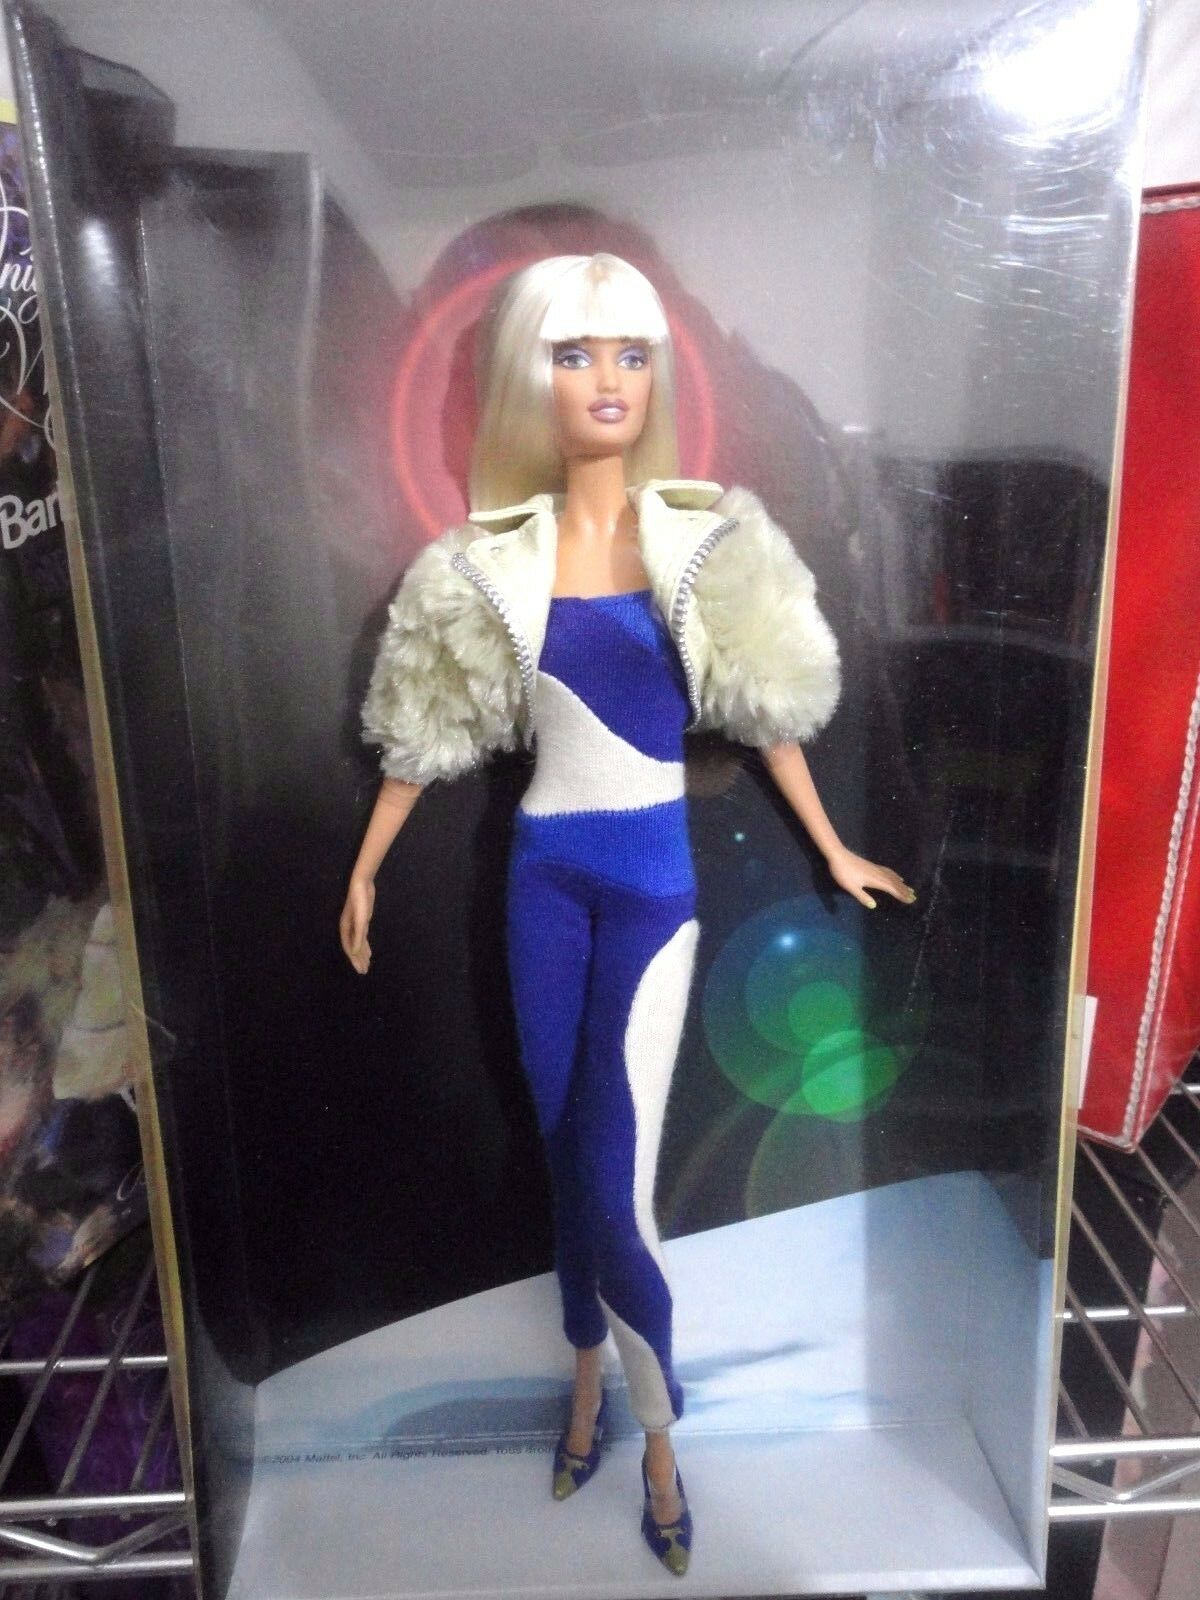 BARBIE BARBIE BARBIE VERSUS VERSACE NRFB - oro LABEL nuovo modellolo muse bambola collection Mattel be57c2